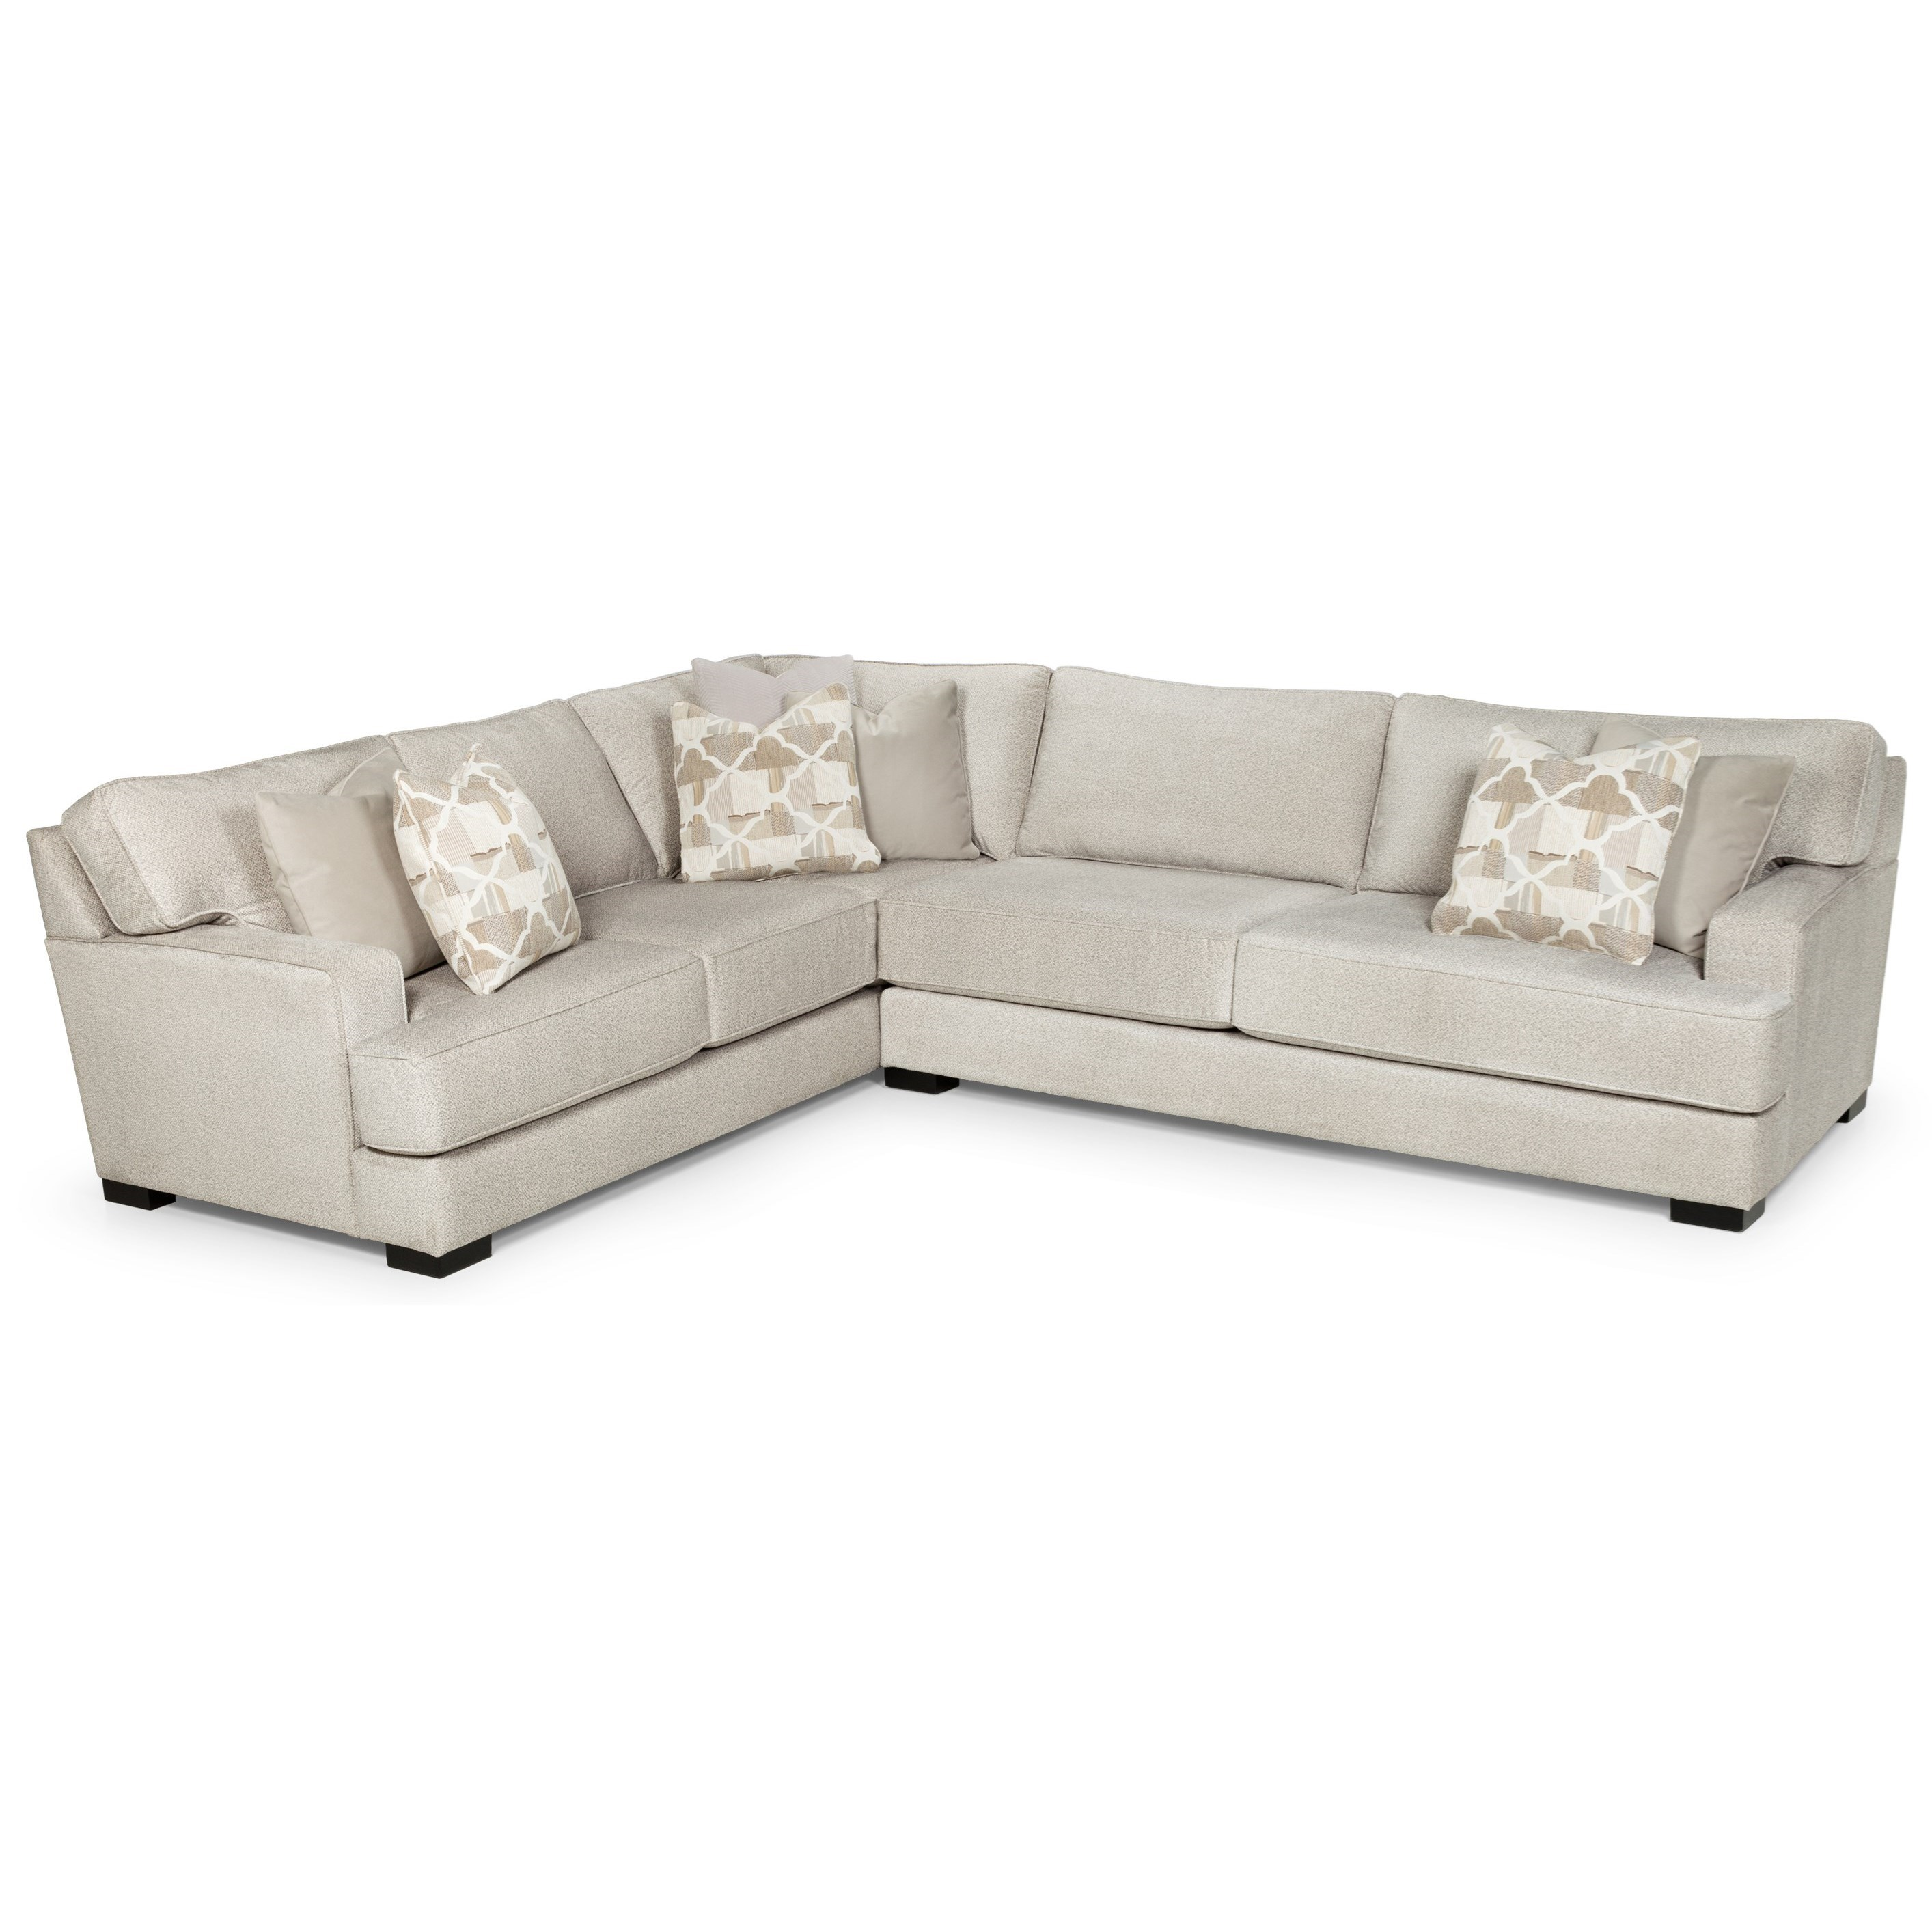 417 Sectional by Sunset Home at Sadler's Home Furnishings